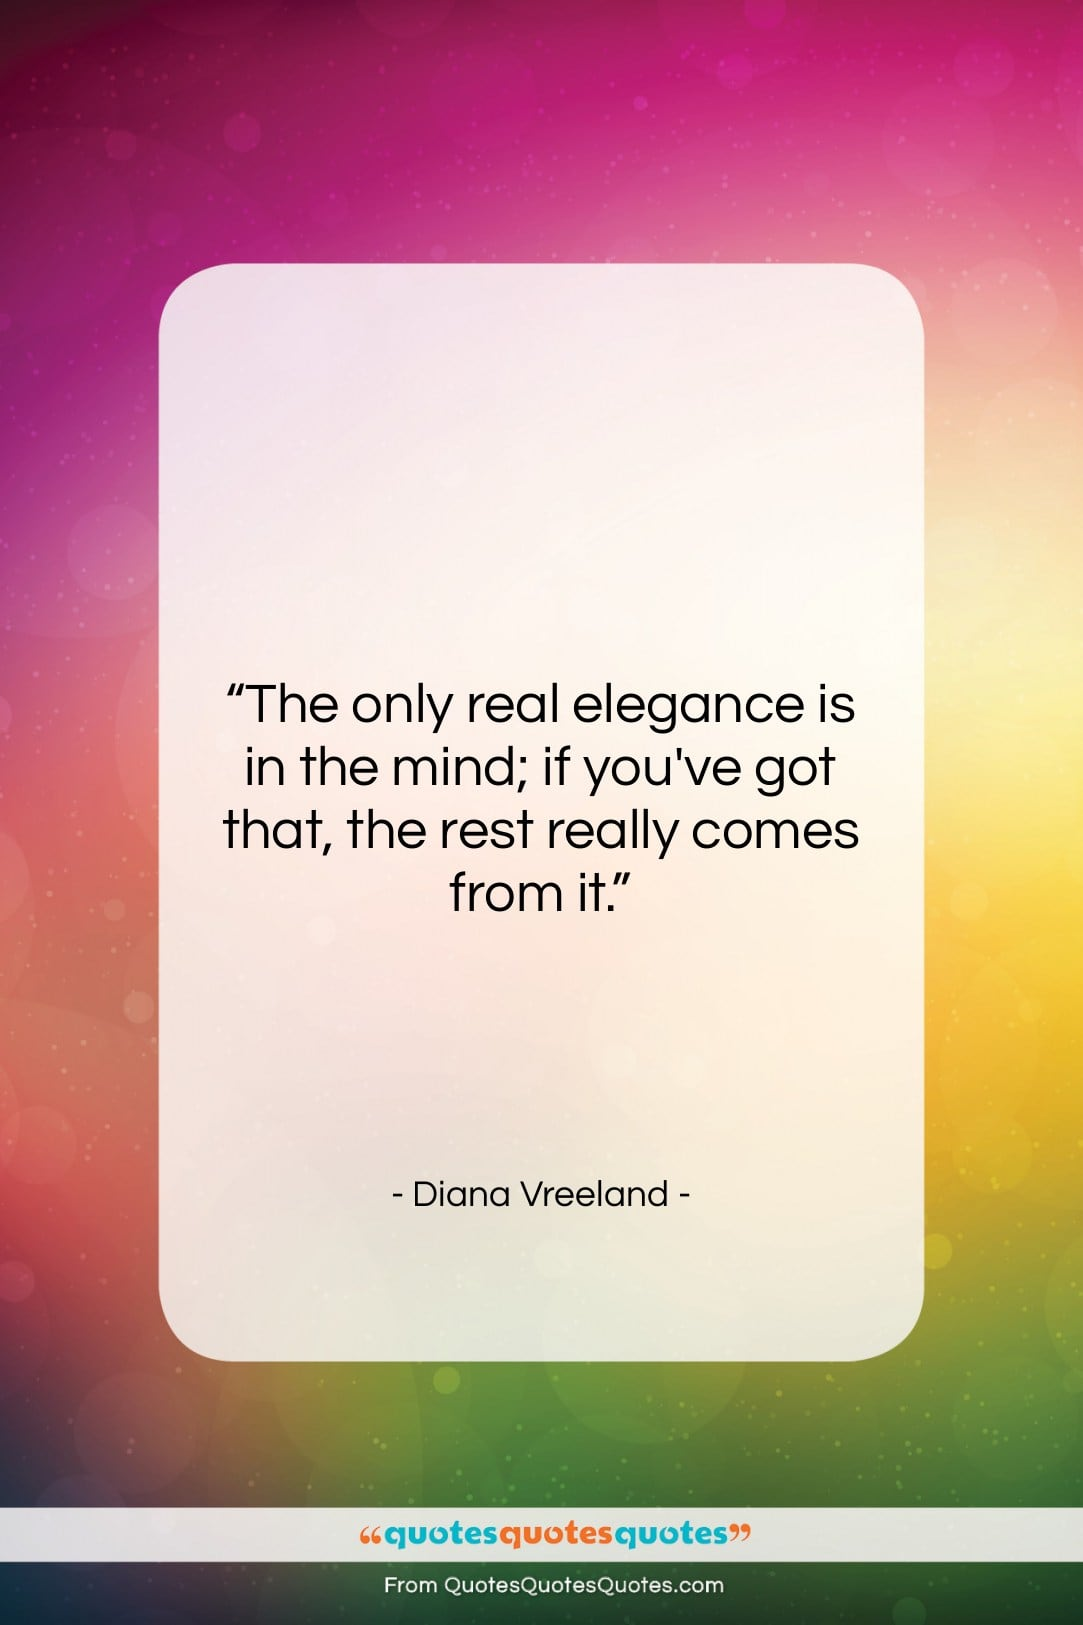 """Diana Vreeland quote: """"The only real elegance is in the…""""- at QuotesQuotesQuotes.com"""